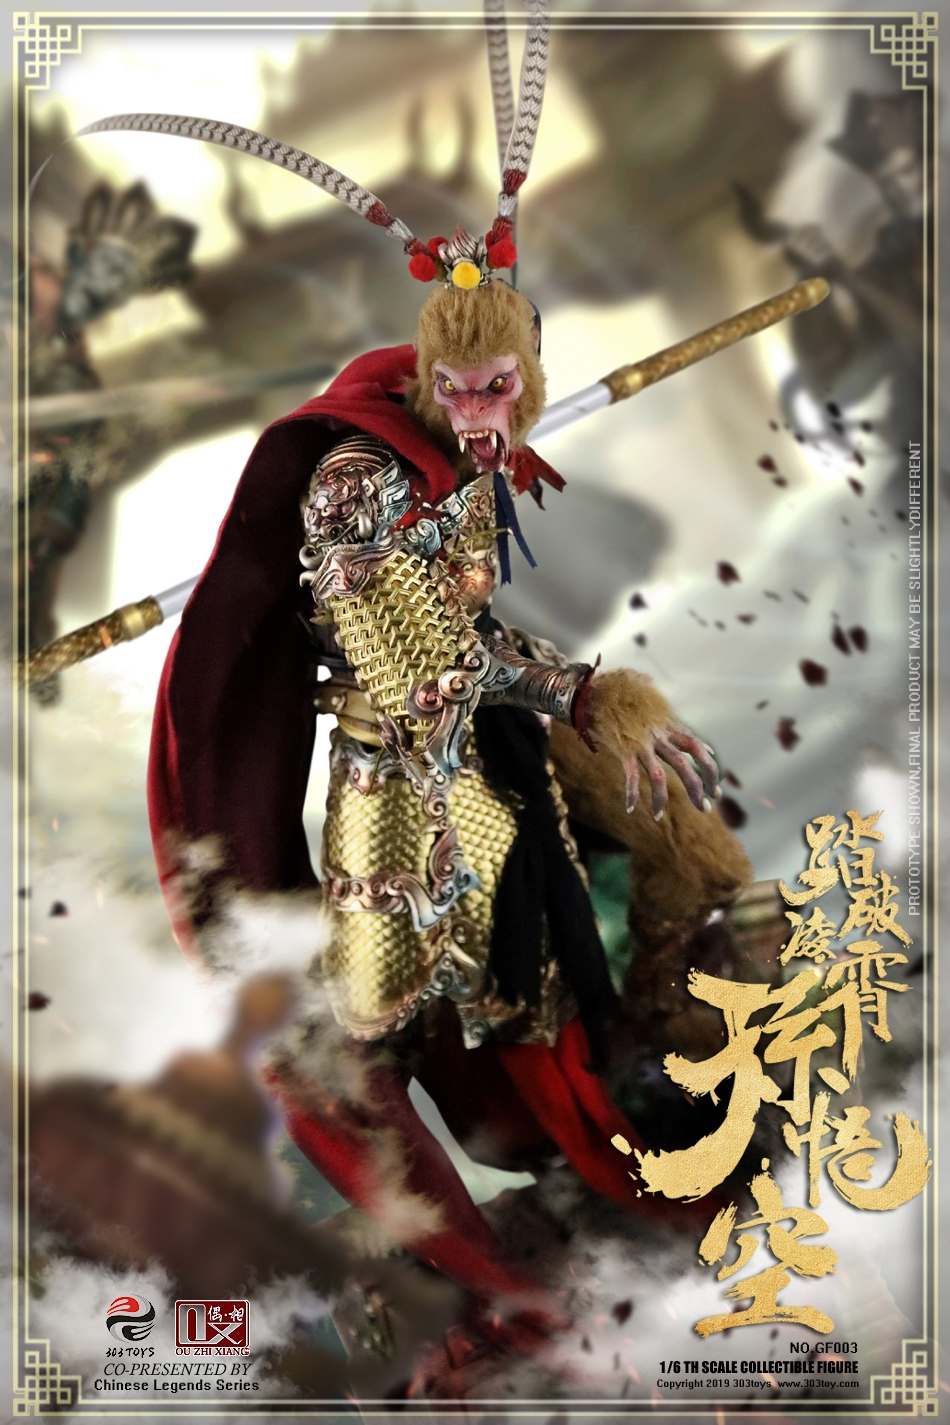 EveningPhase - NEW PRODUCT: 303TOYS x Evening phase: 1/6 National Wind Legend Series - Sun Wukong Monkey King Apocalypse & Dasheng Qitian & Stepping 18102610